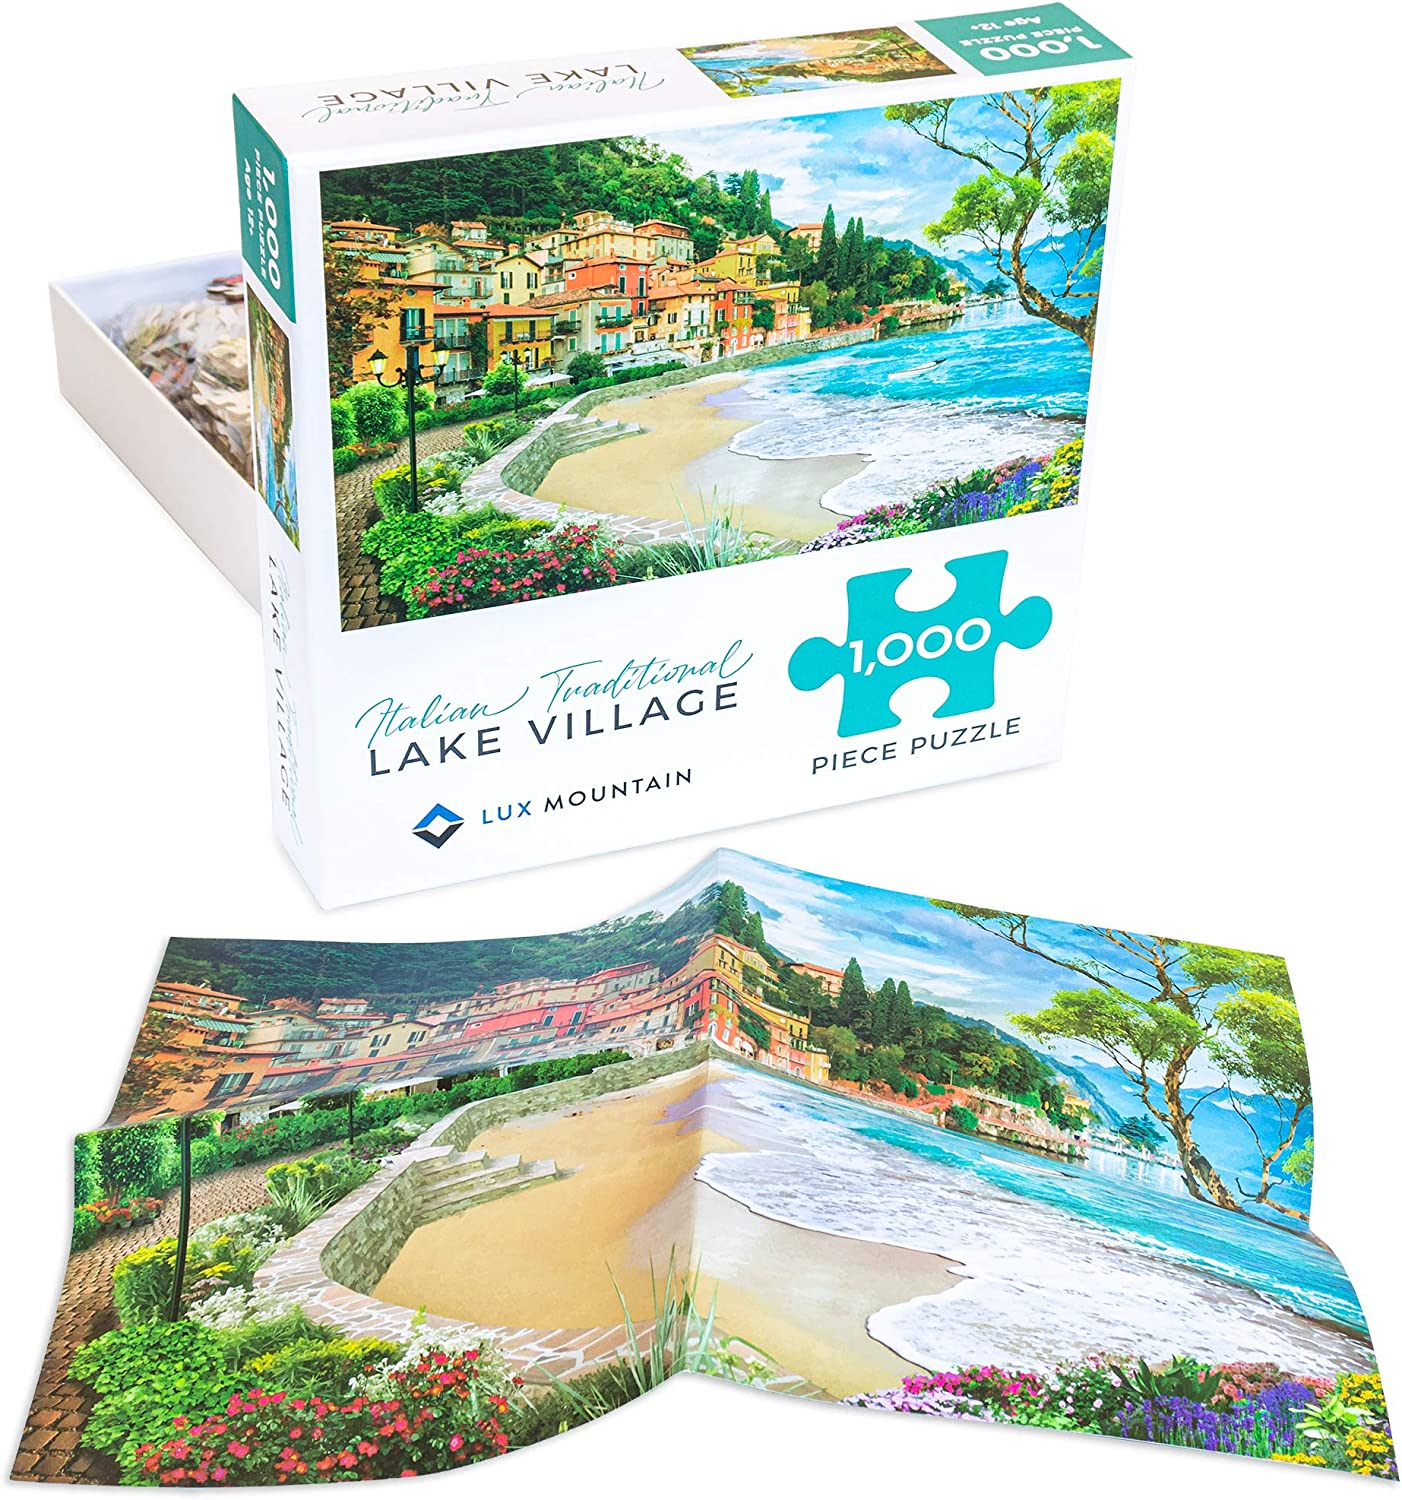 Premium Jigsaw Puzzle 1000 Pieces for Adults Italian Traditional Lake Village